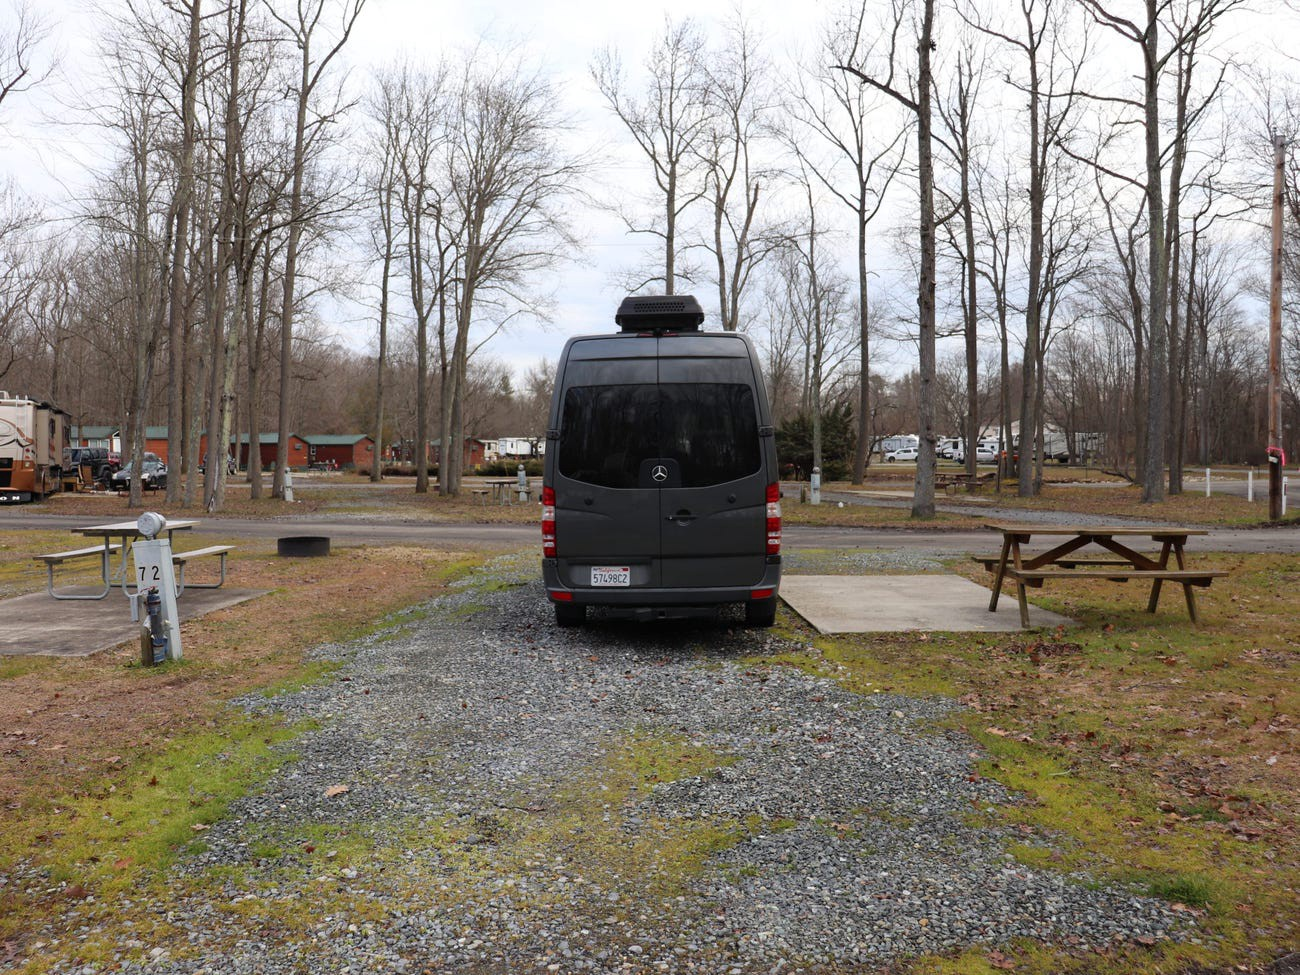 The camper van parked at a campground.